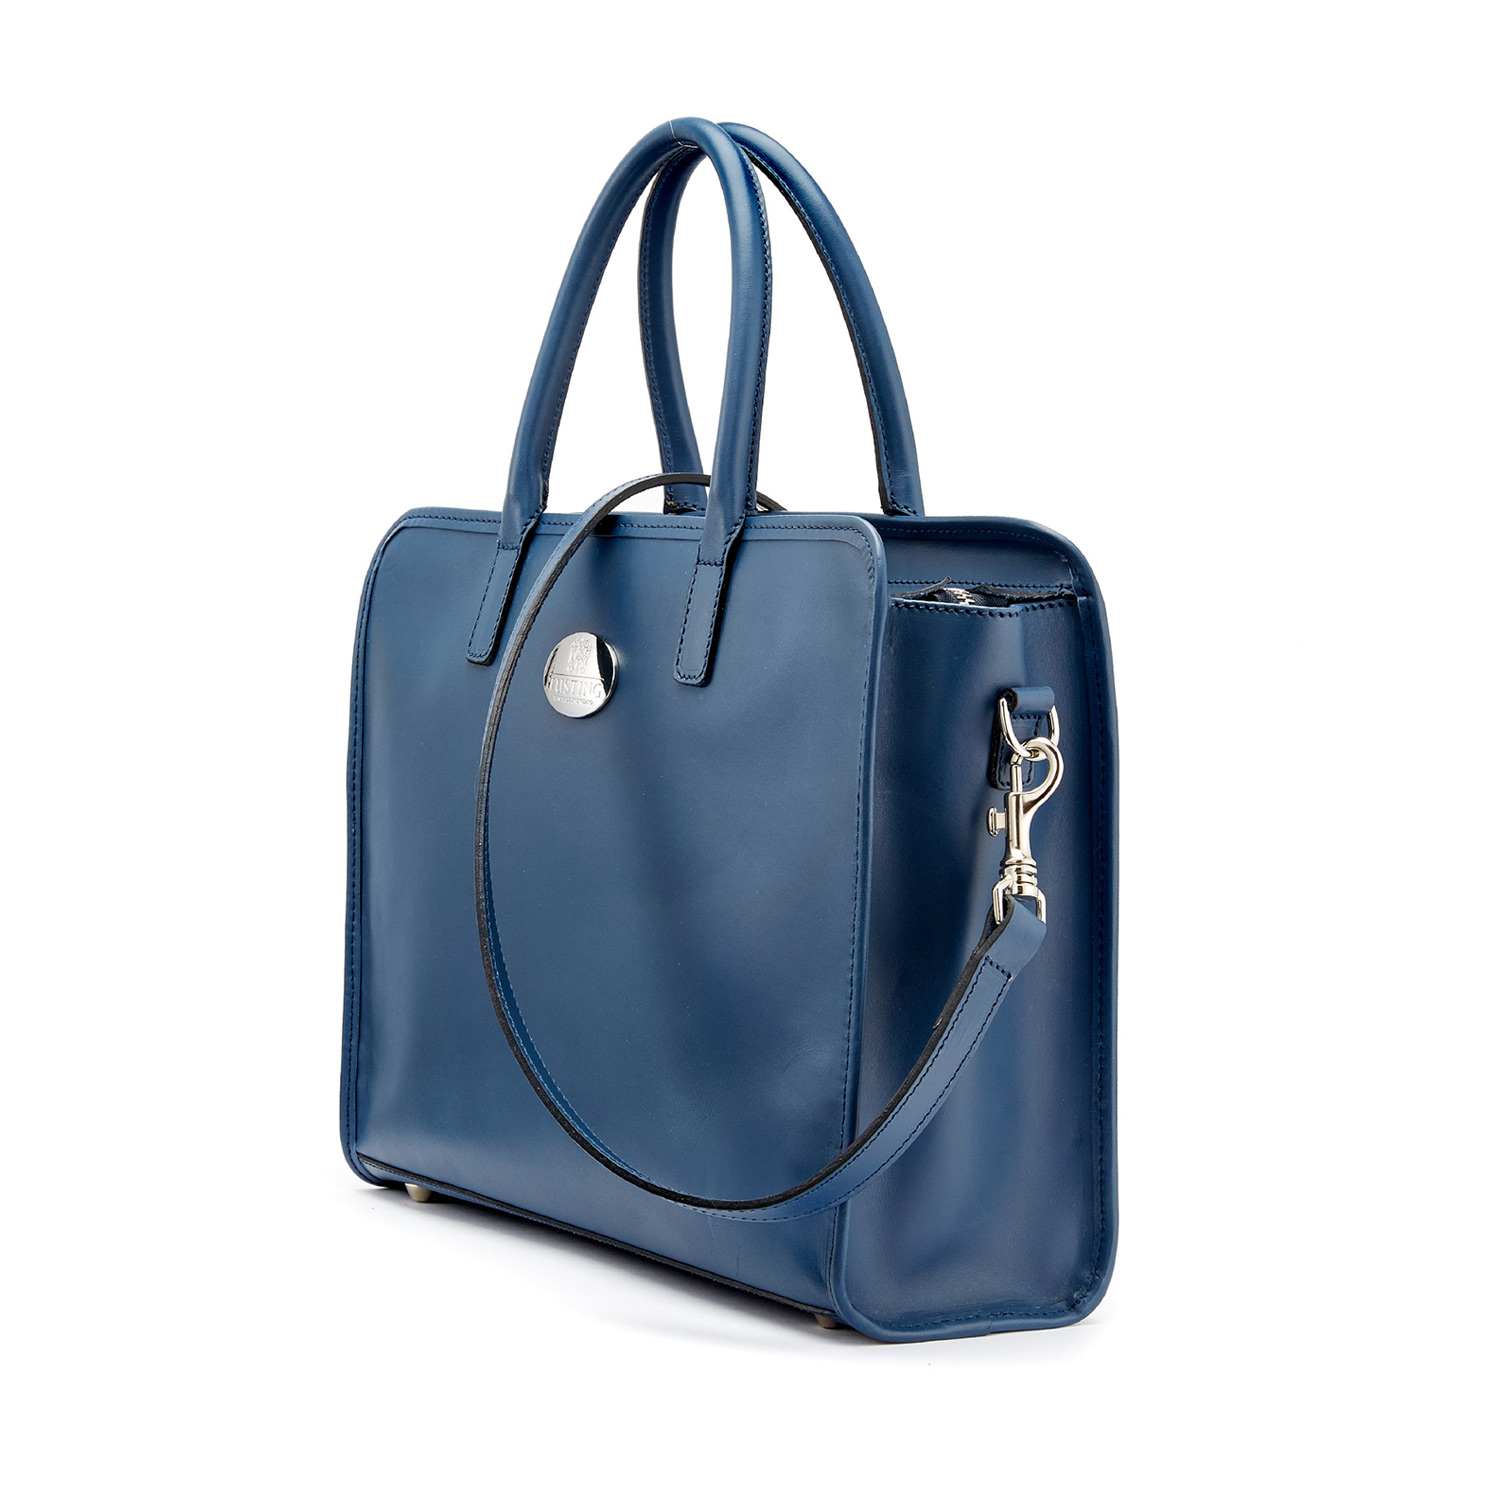 Tusting Catherine in Marine Blue Leather